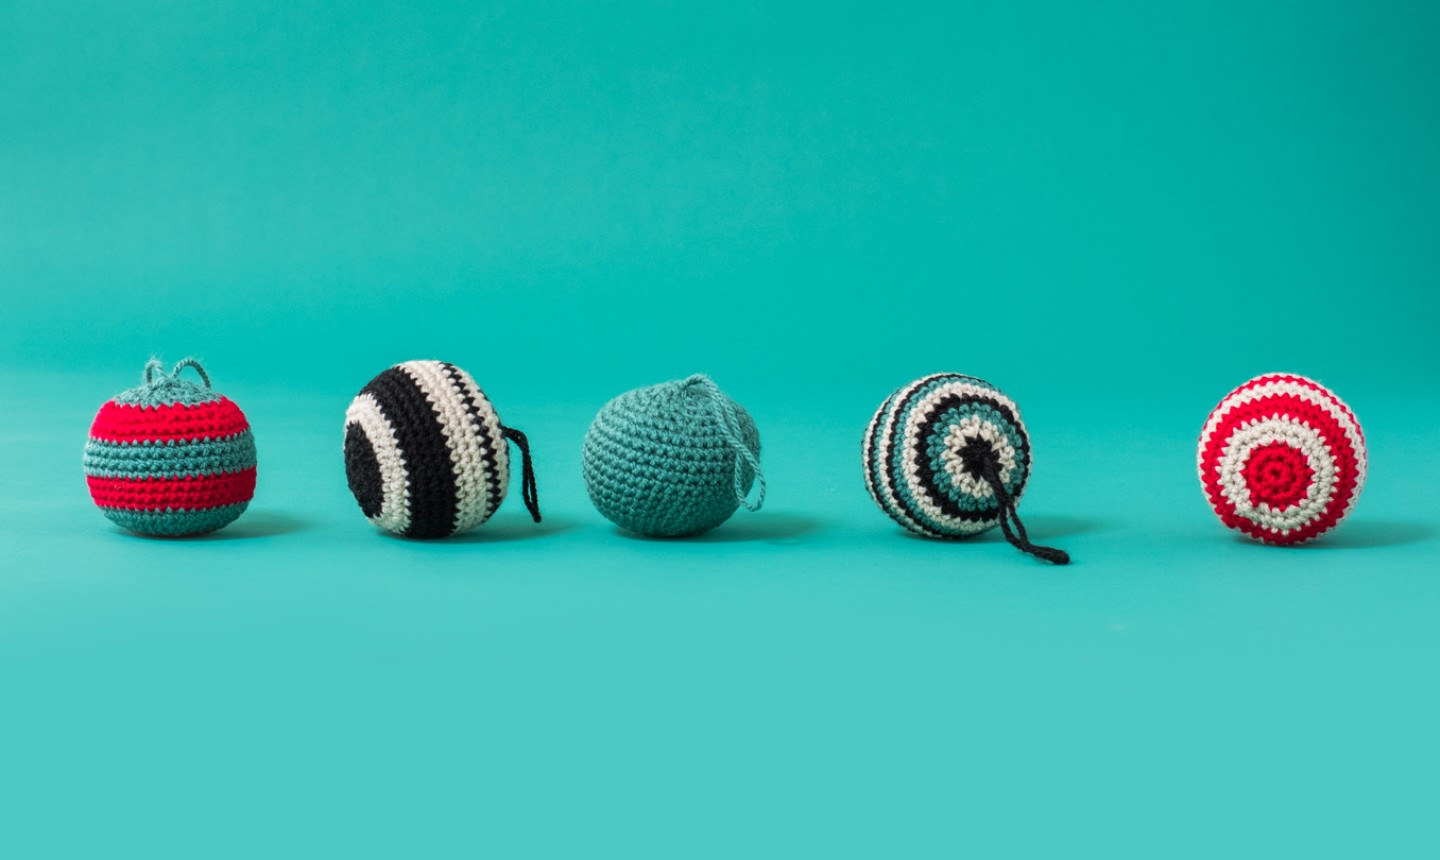 crochet round ornaments